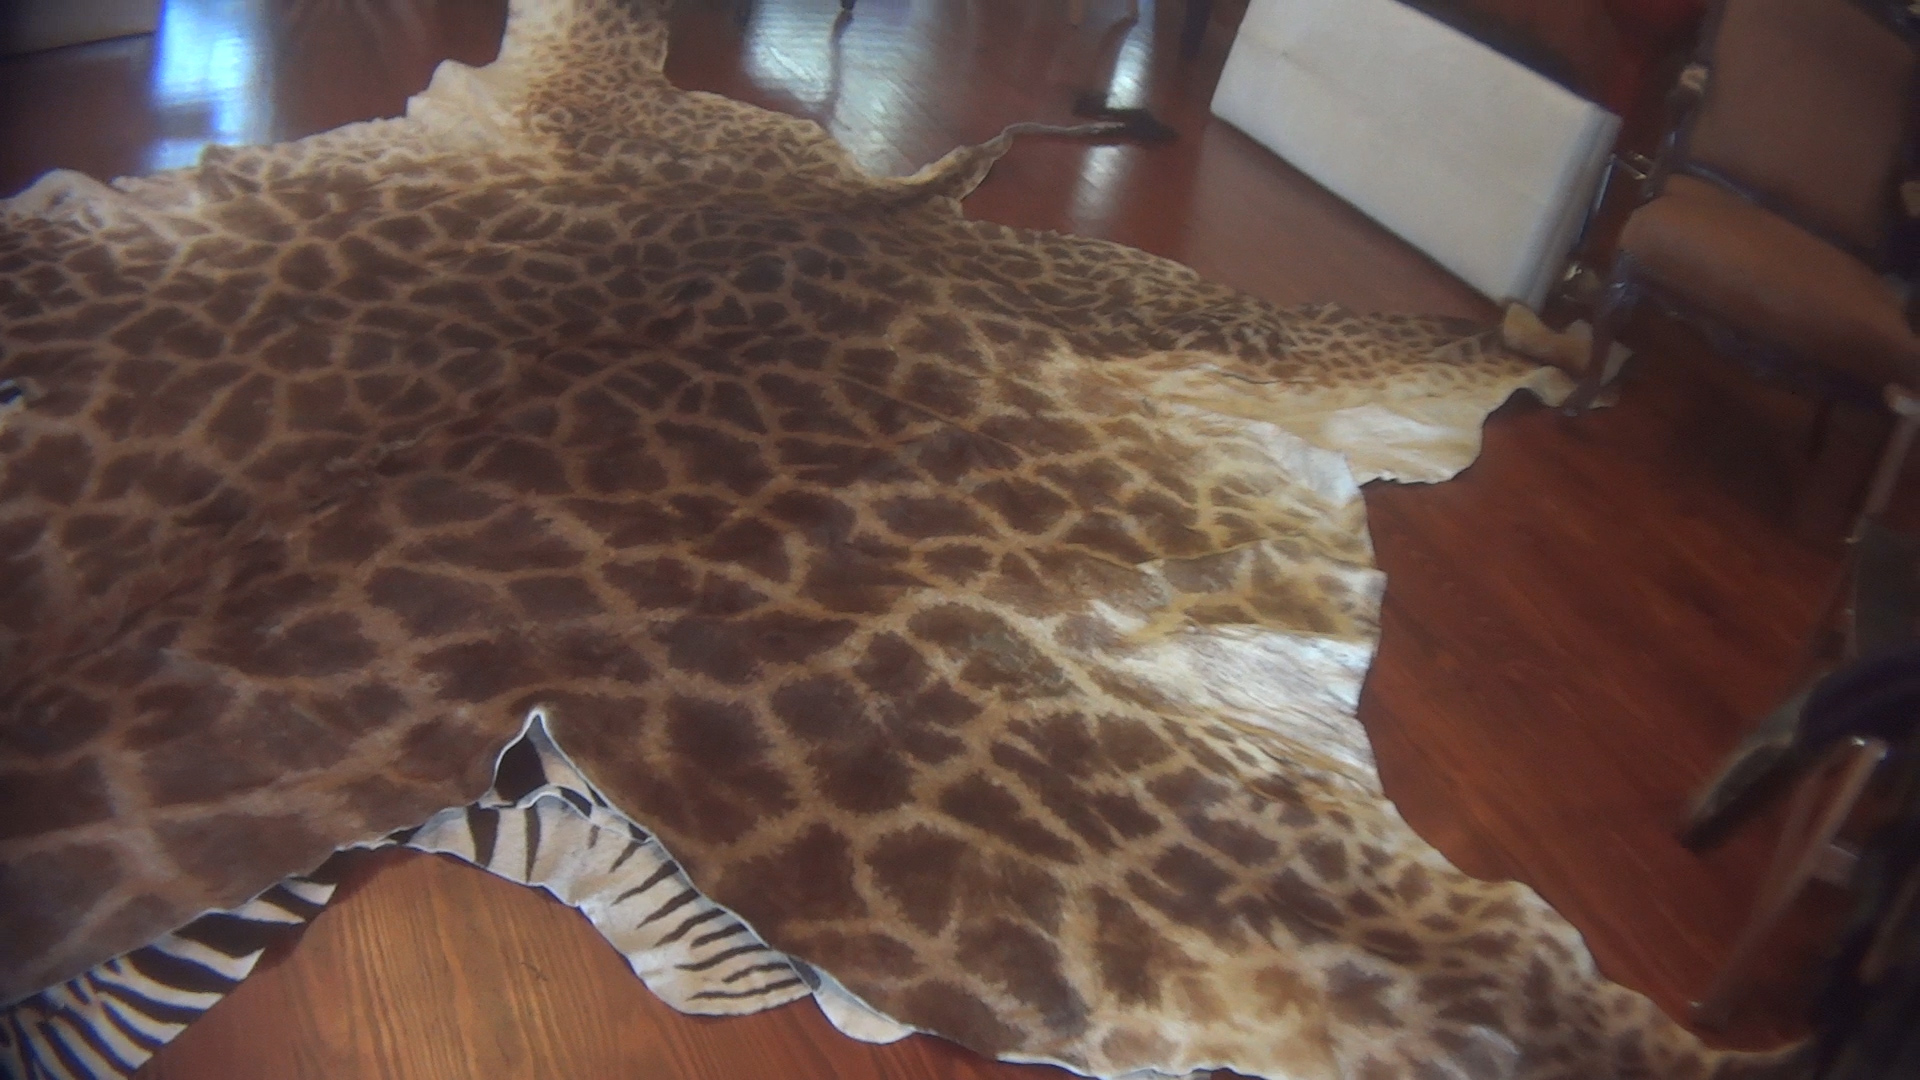 Giraffe Parts Investigation